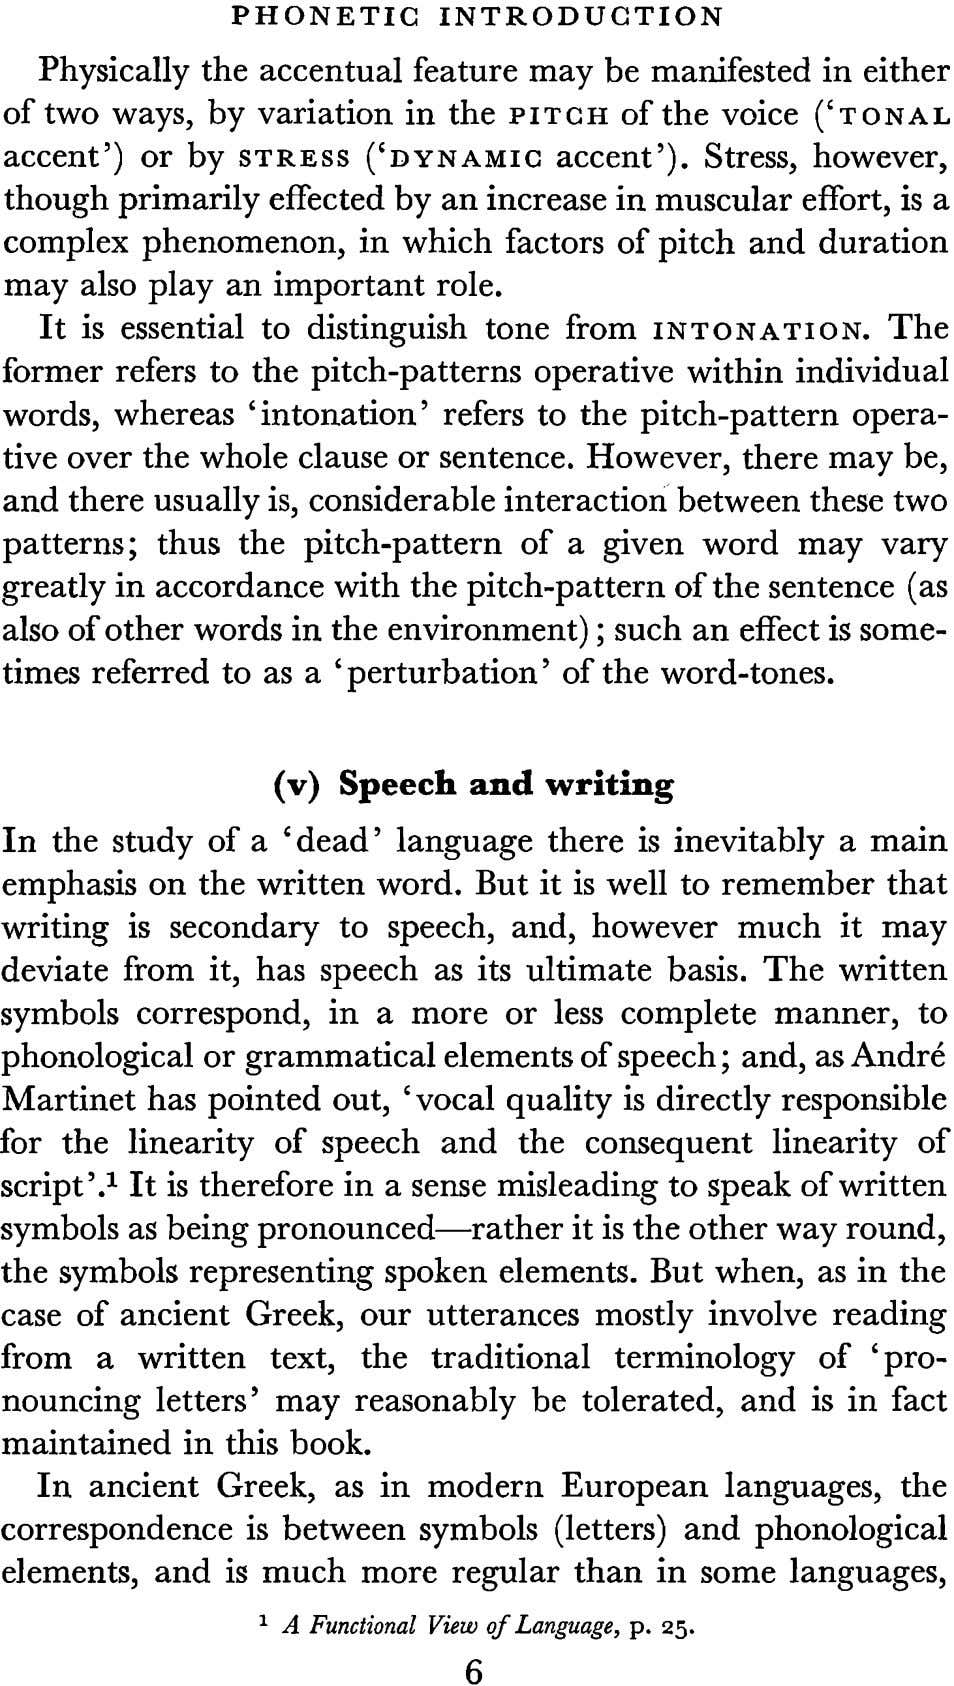 PHONETIC INTRODUCTION Physically the accentual feature may be manifested in either of two ways, by